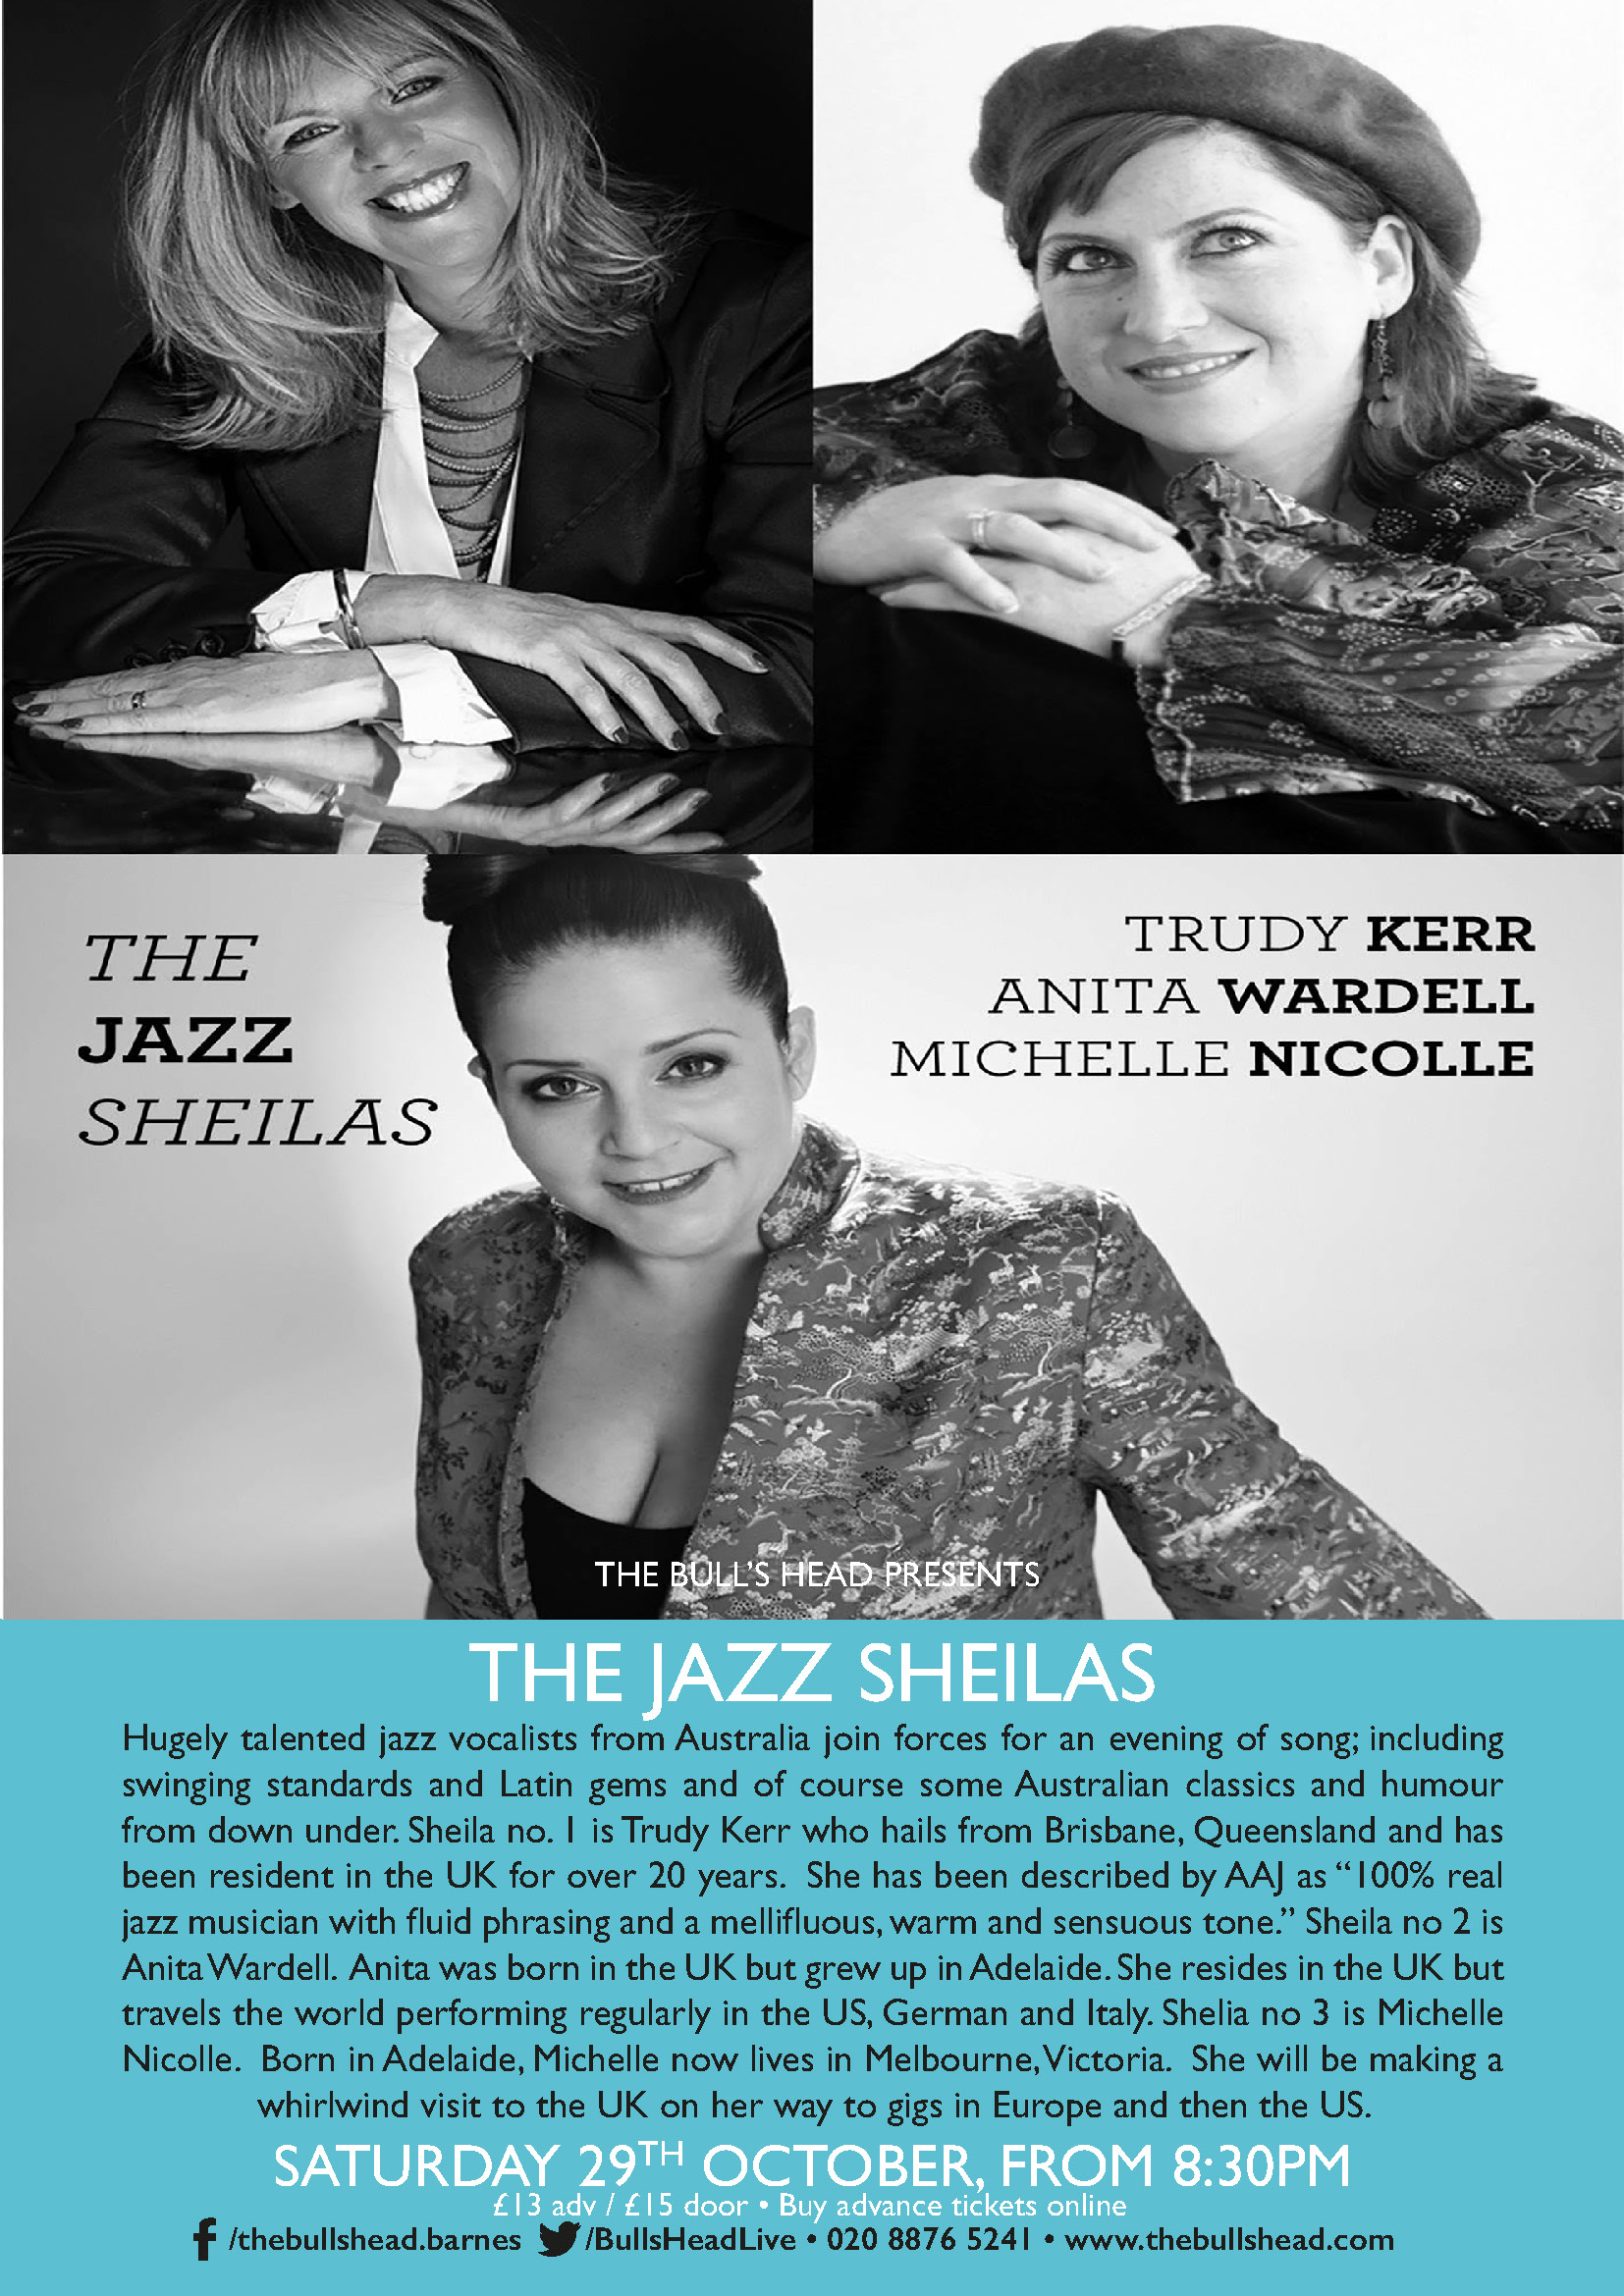 The Jazz Sheilas